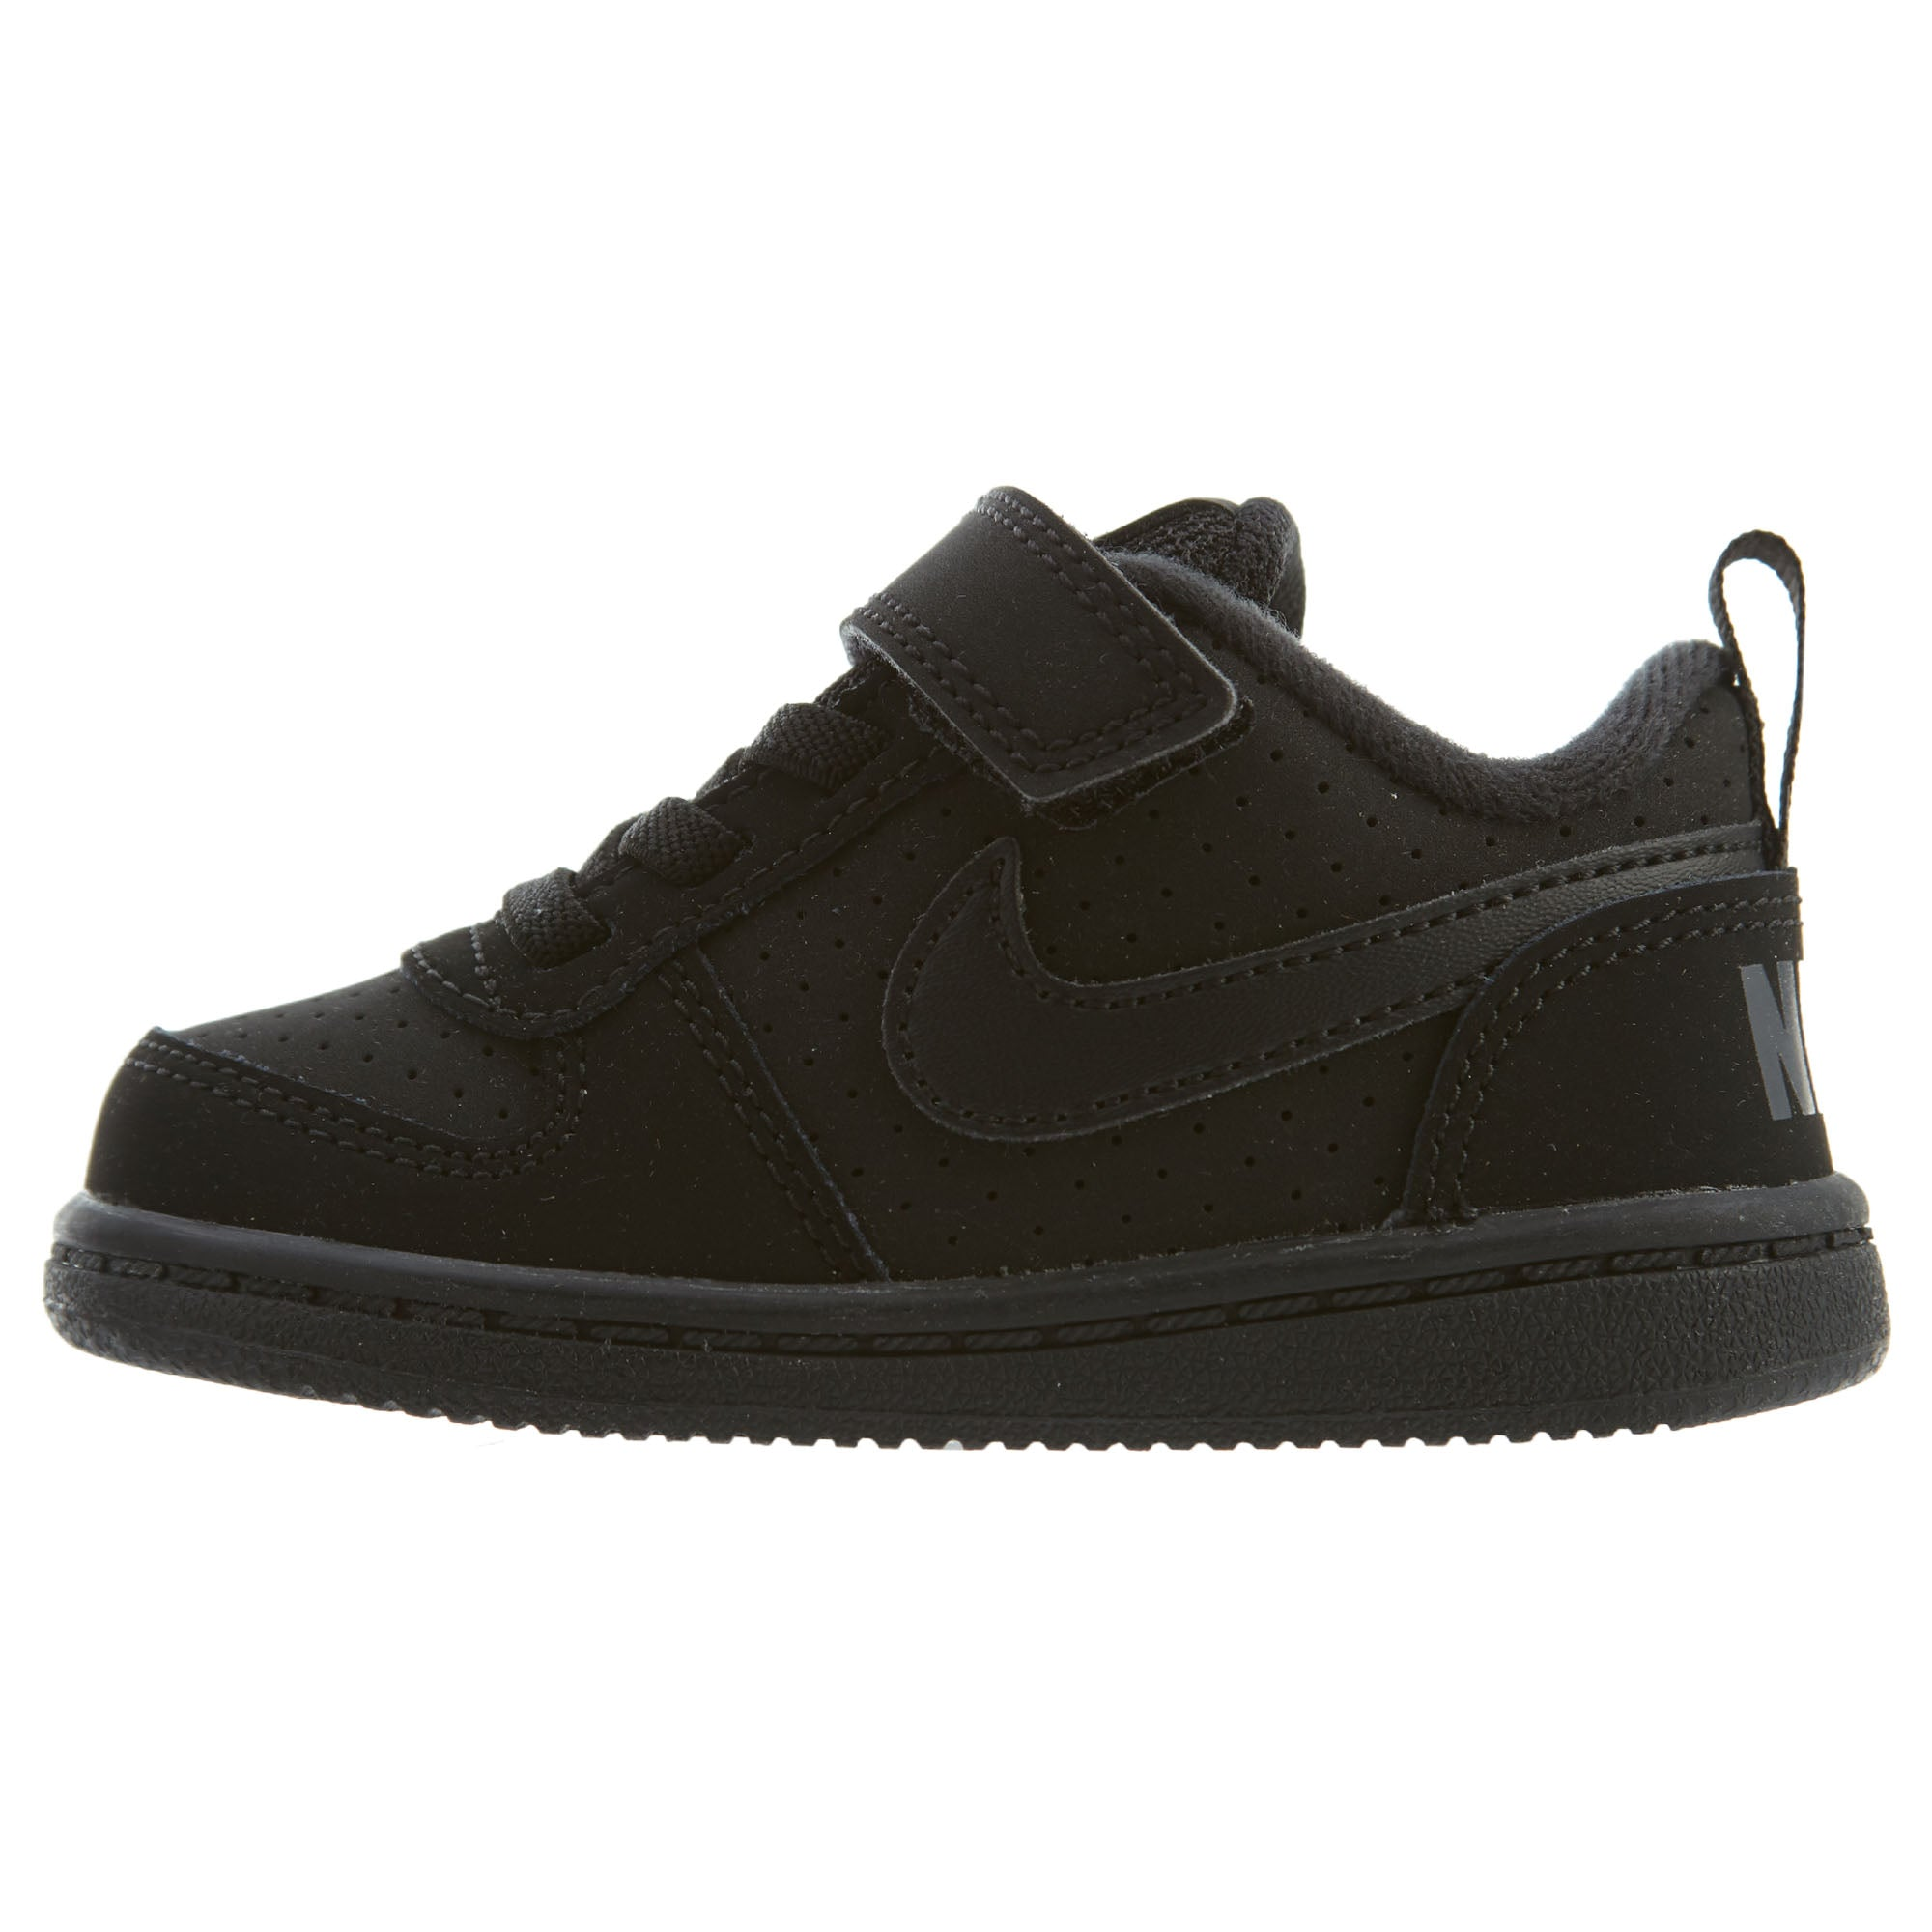 6ea2106816 Nike Court Borough Low Toddlers 870029-001 – Sneaker Experts